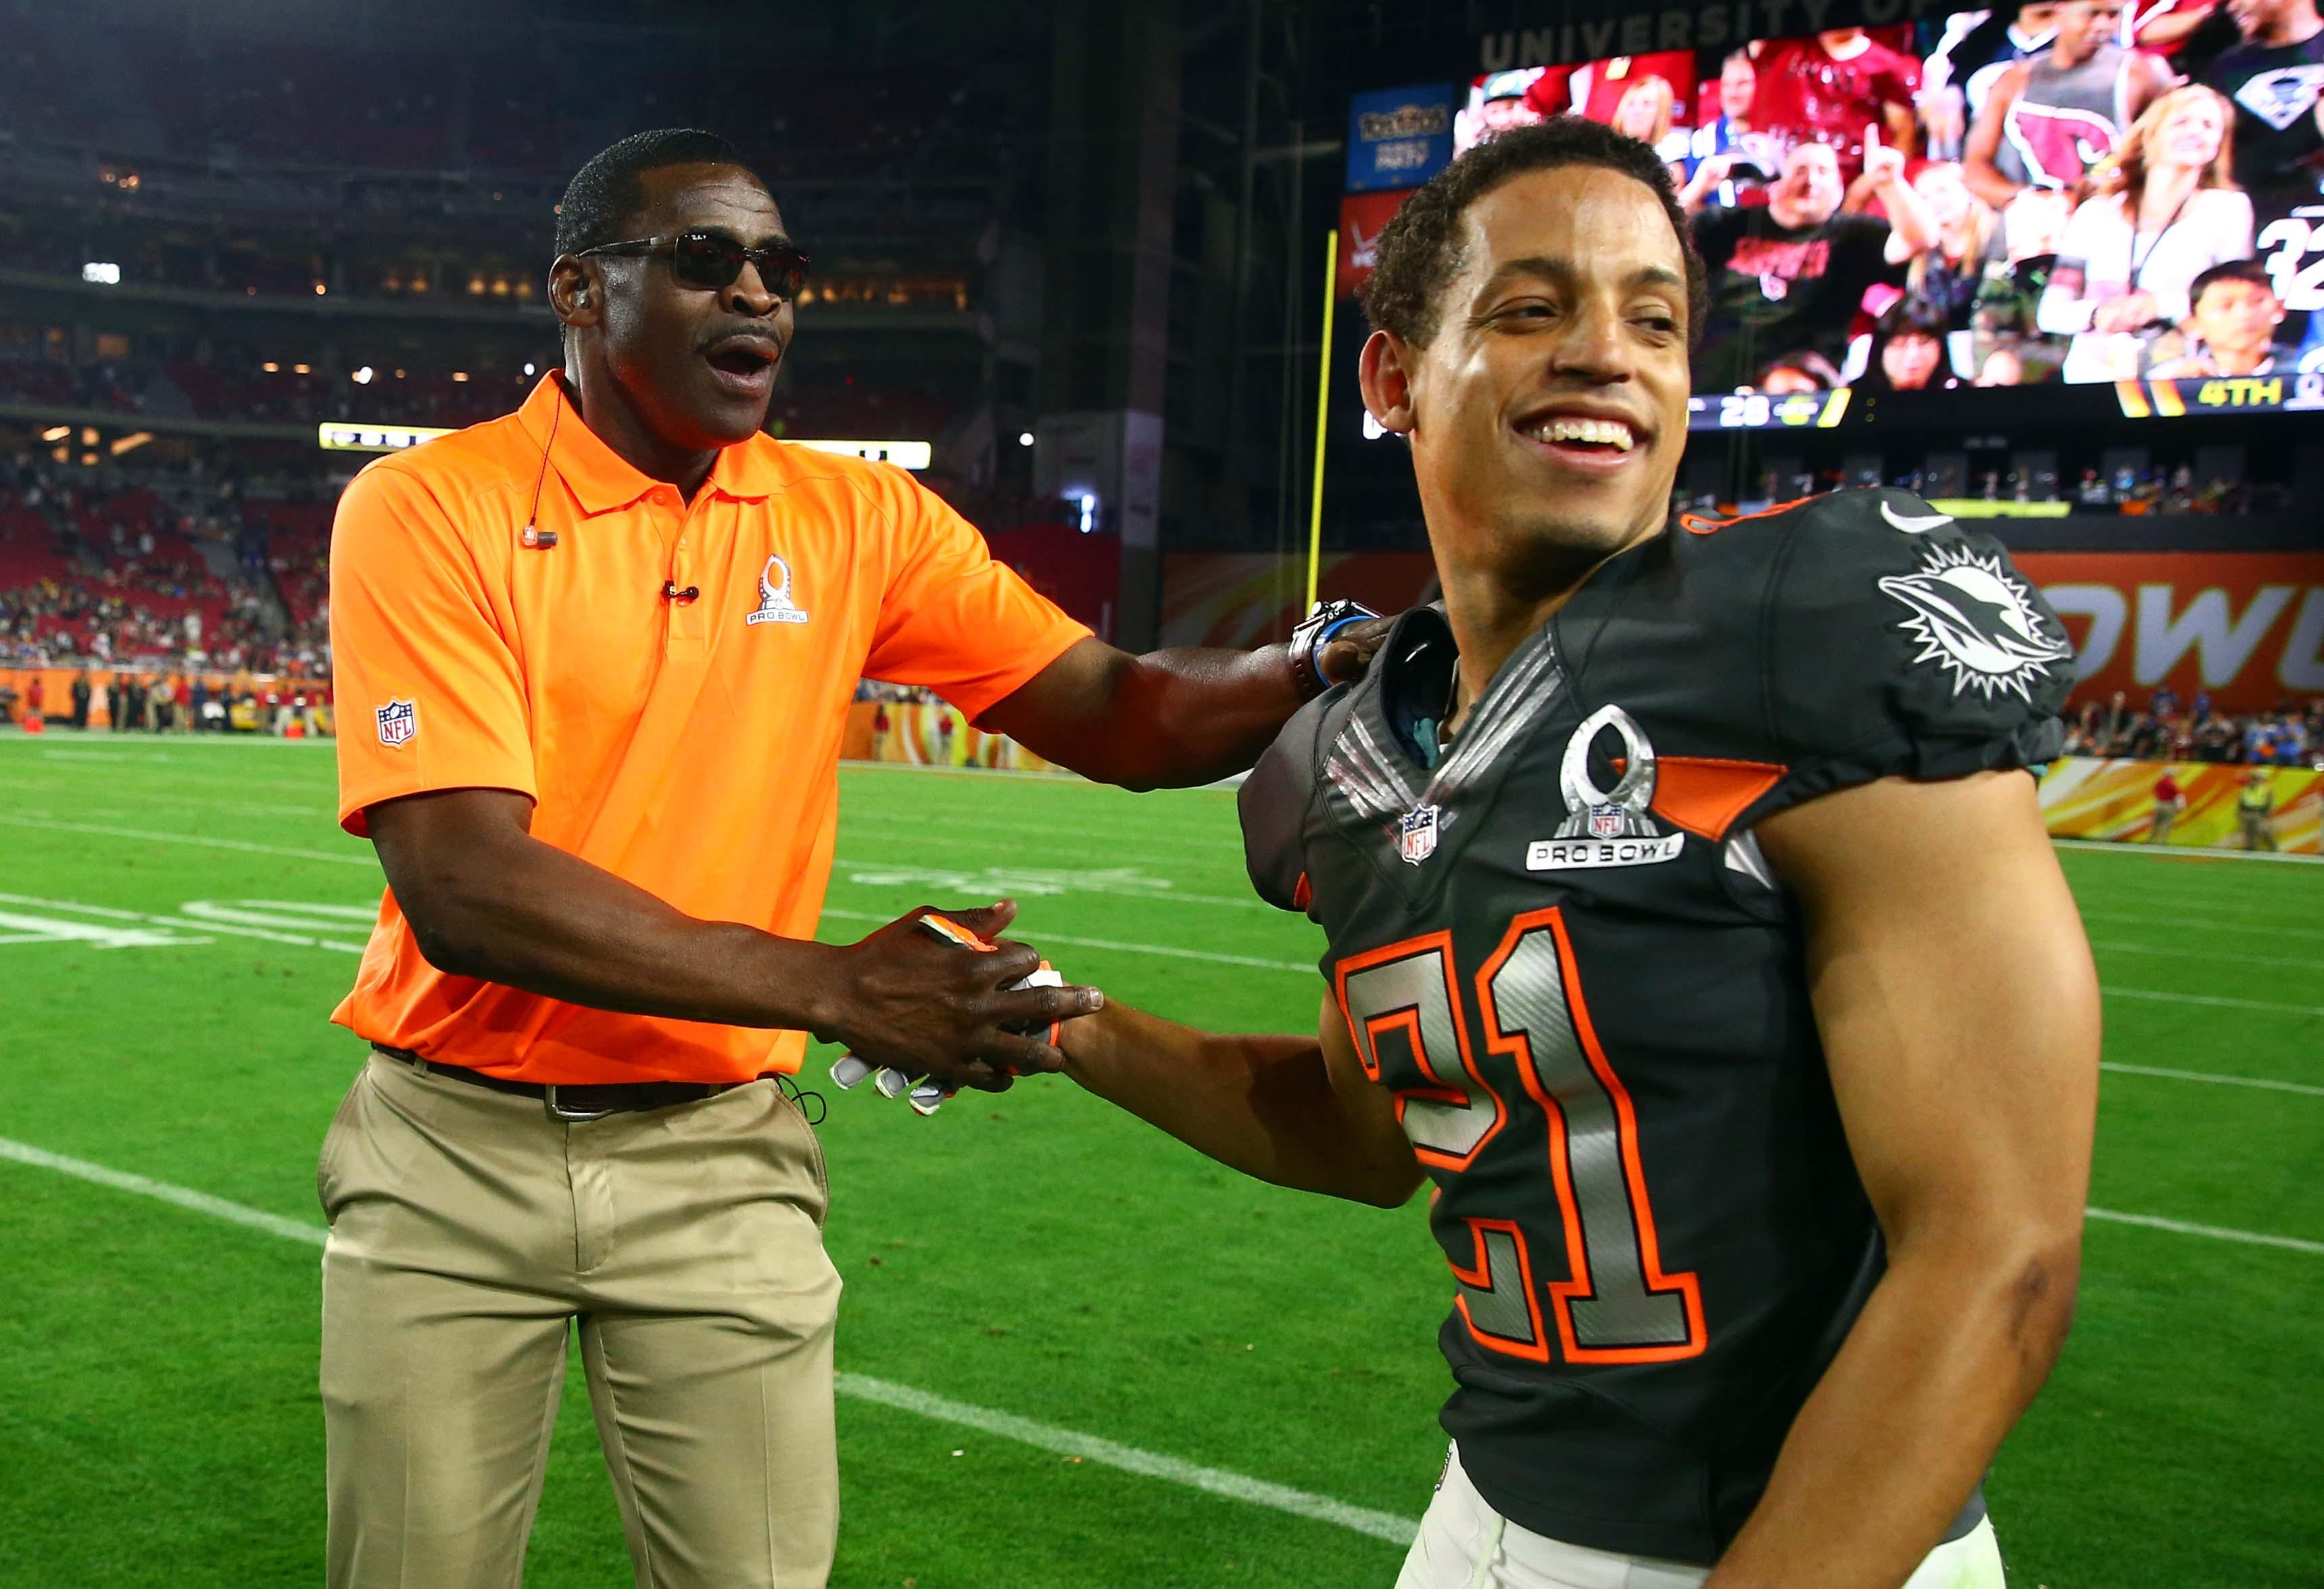 Brent Grimes makes insane back to the ball interception in Pro Bowl